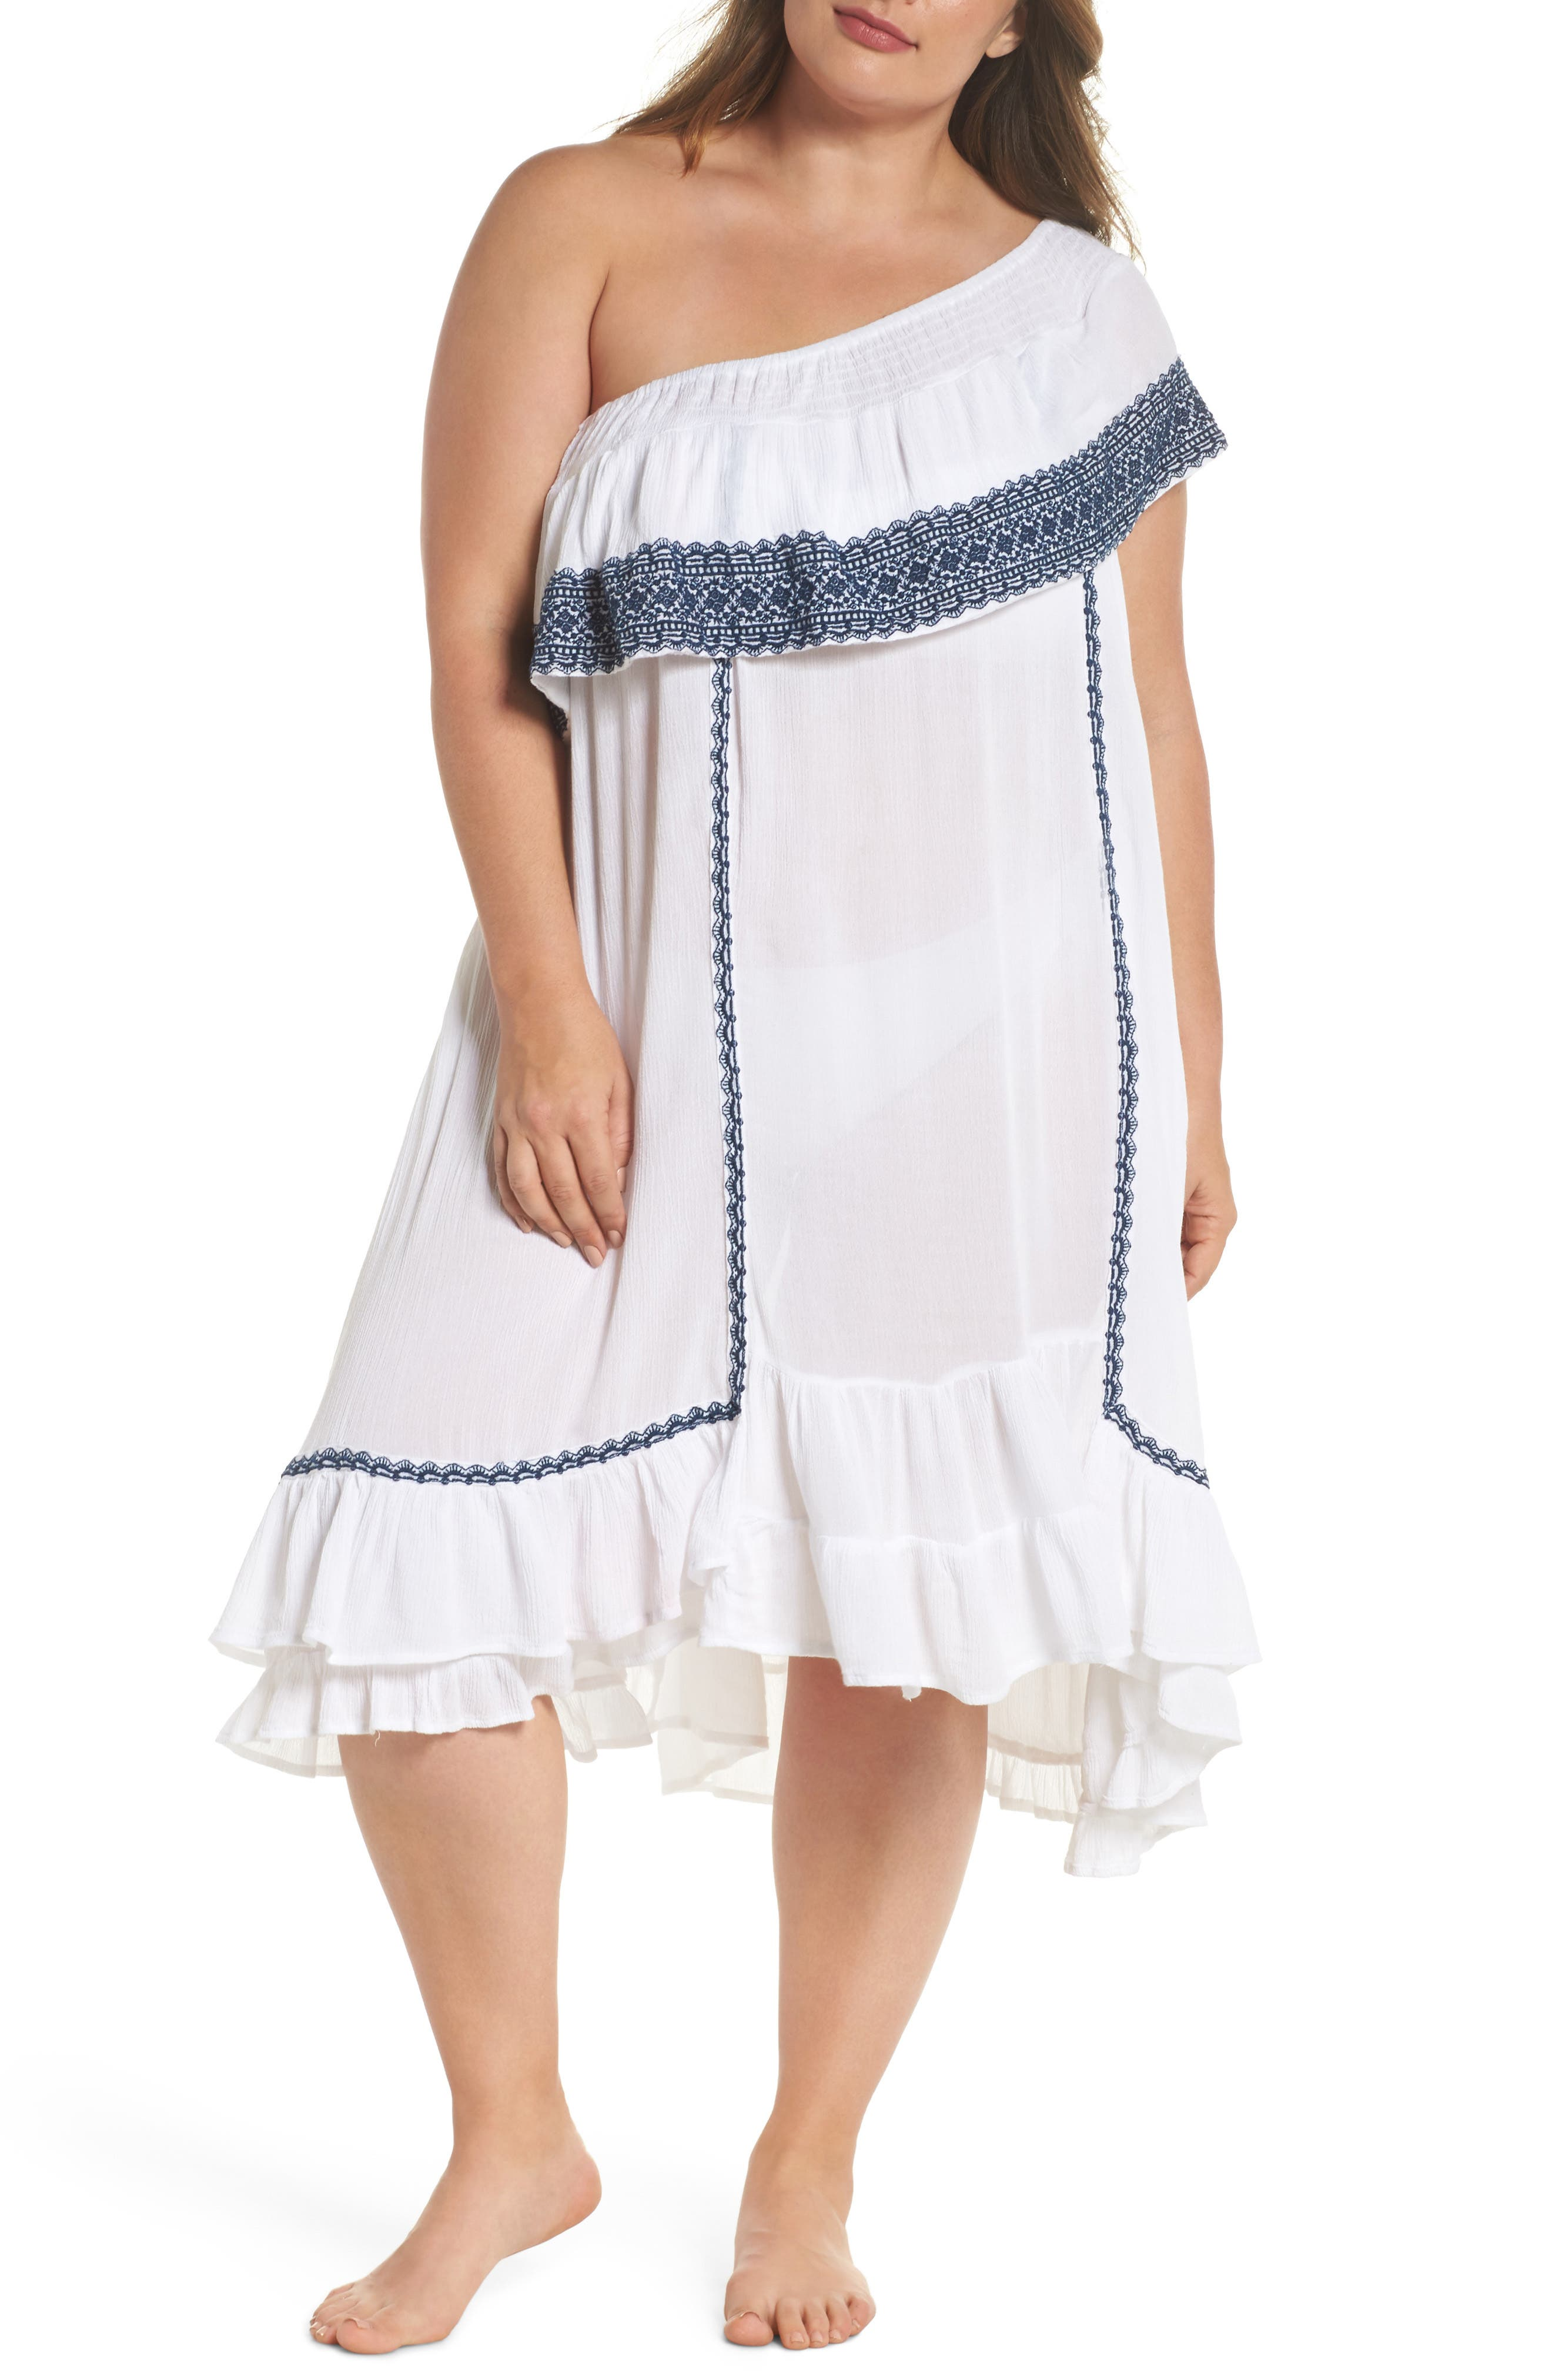 Gavin One-Shoulder Cover-Up Dress,                             Main thumbnail 1, color,                             White/ Navy